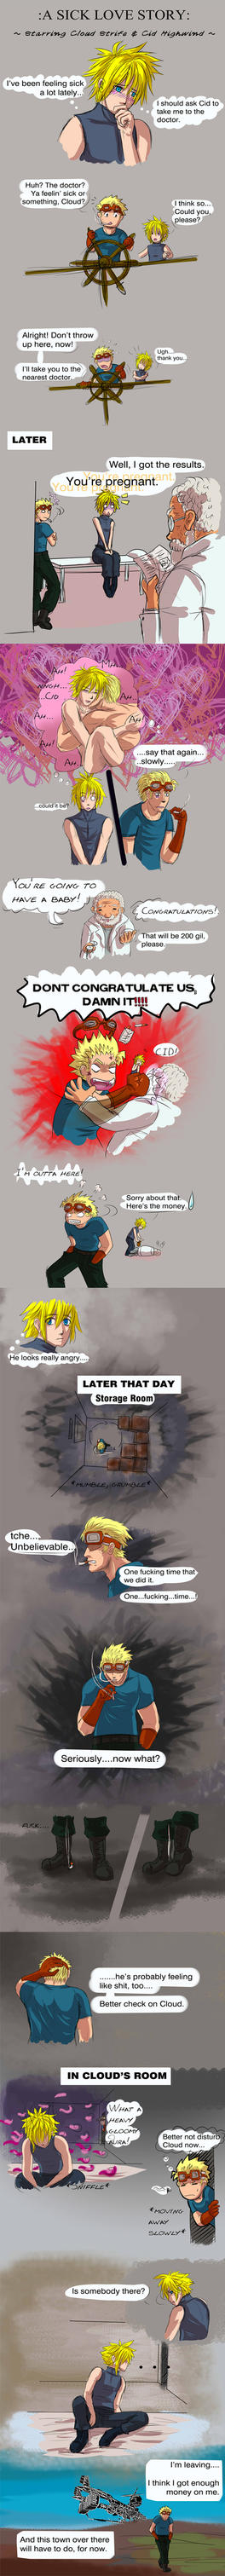 FF7 A Sick Love Story with Cid n Cloud 1 by Dragona15